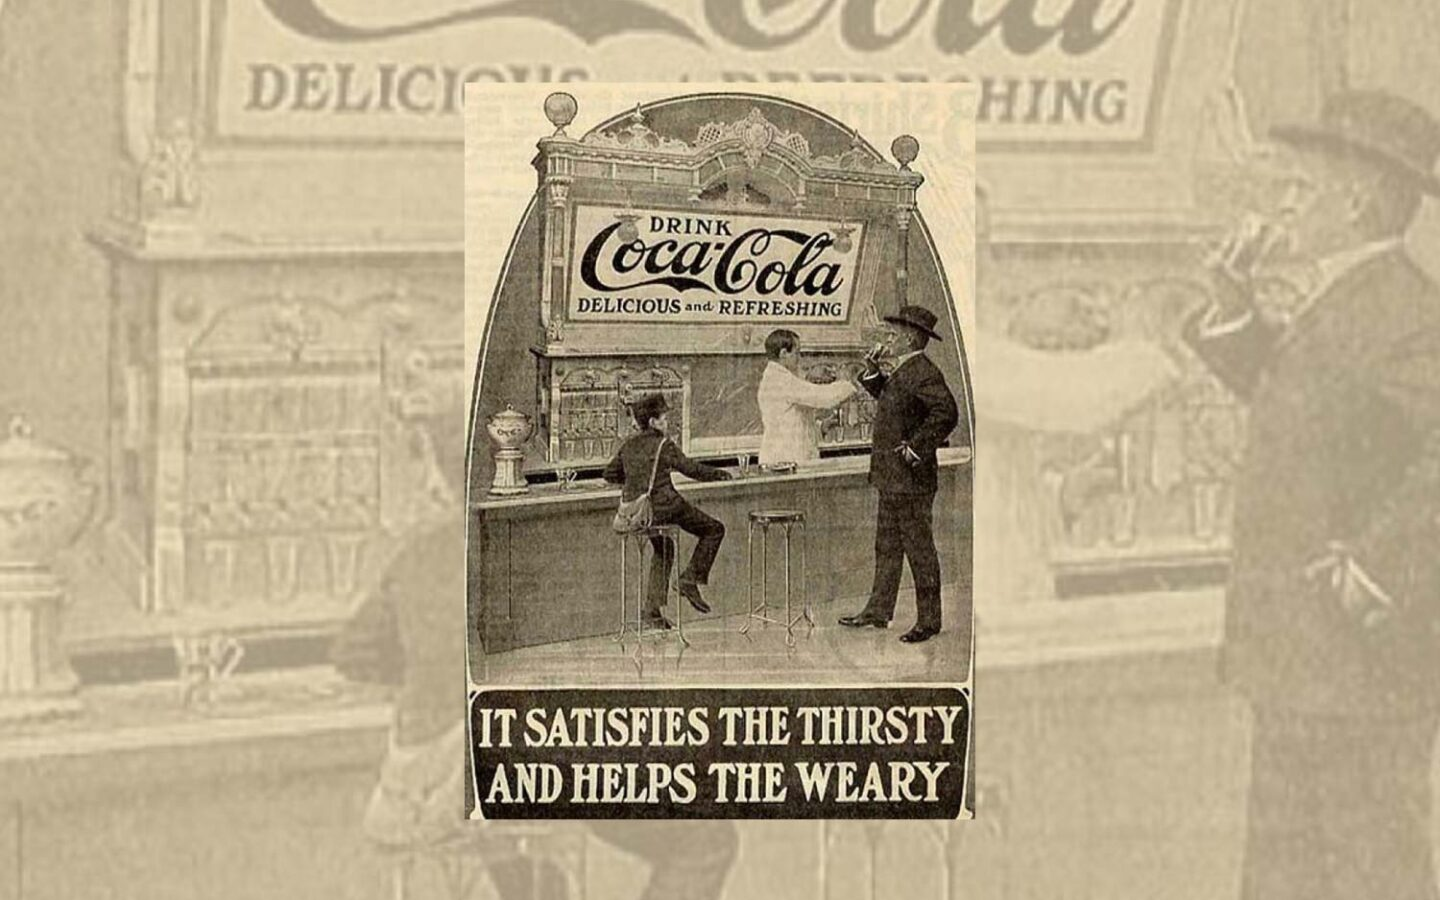 historical sepia photo of three people at a coca cola themed bar